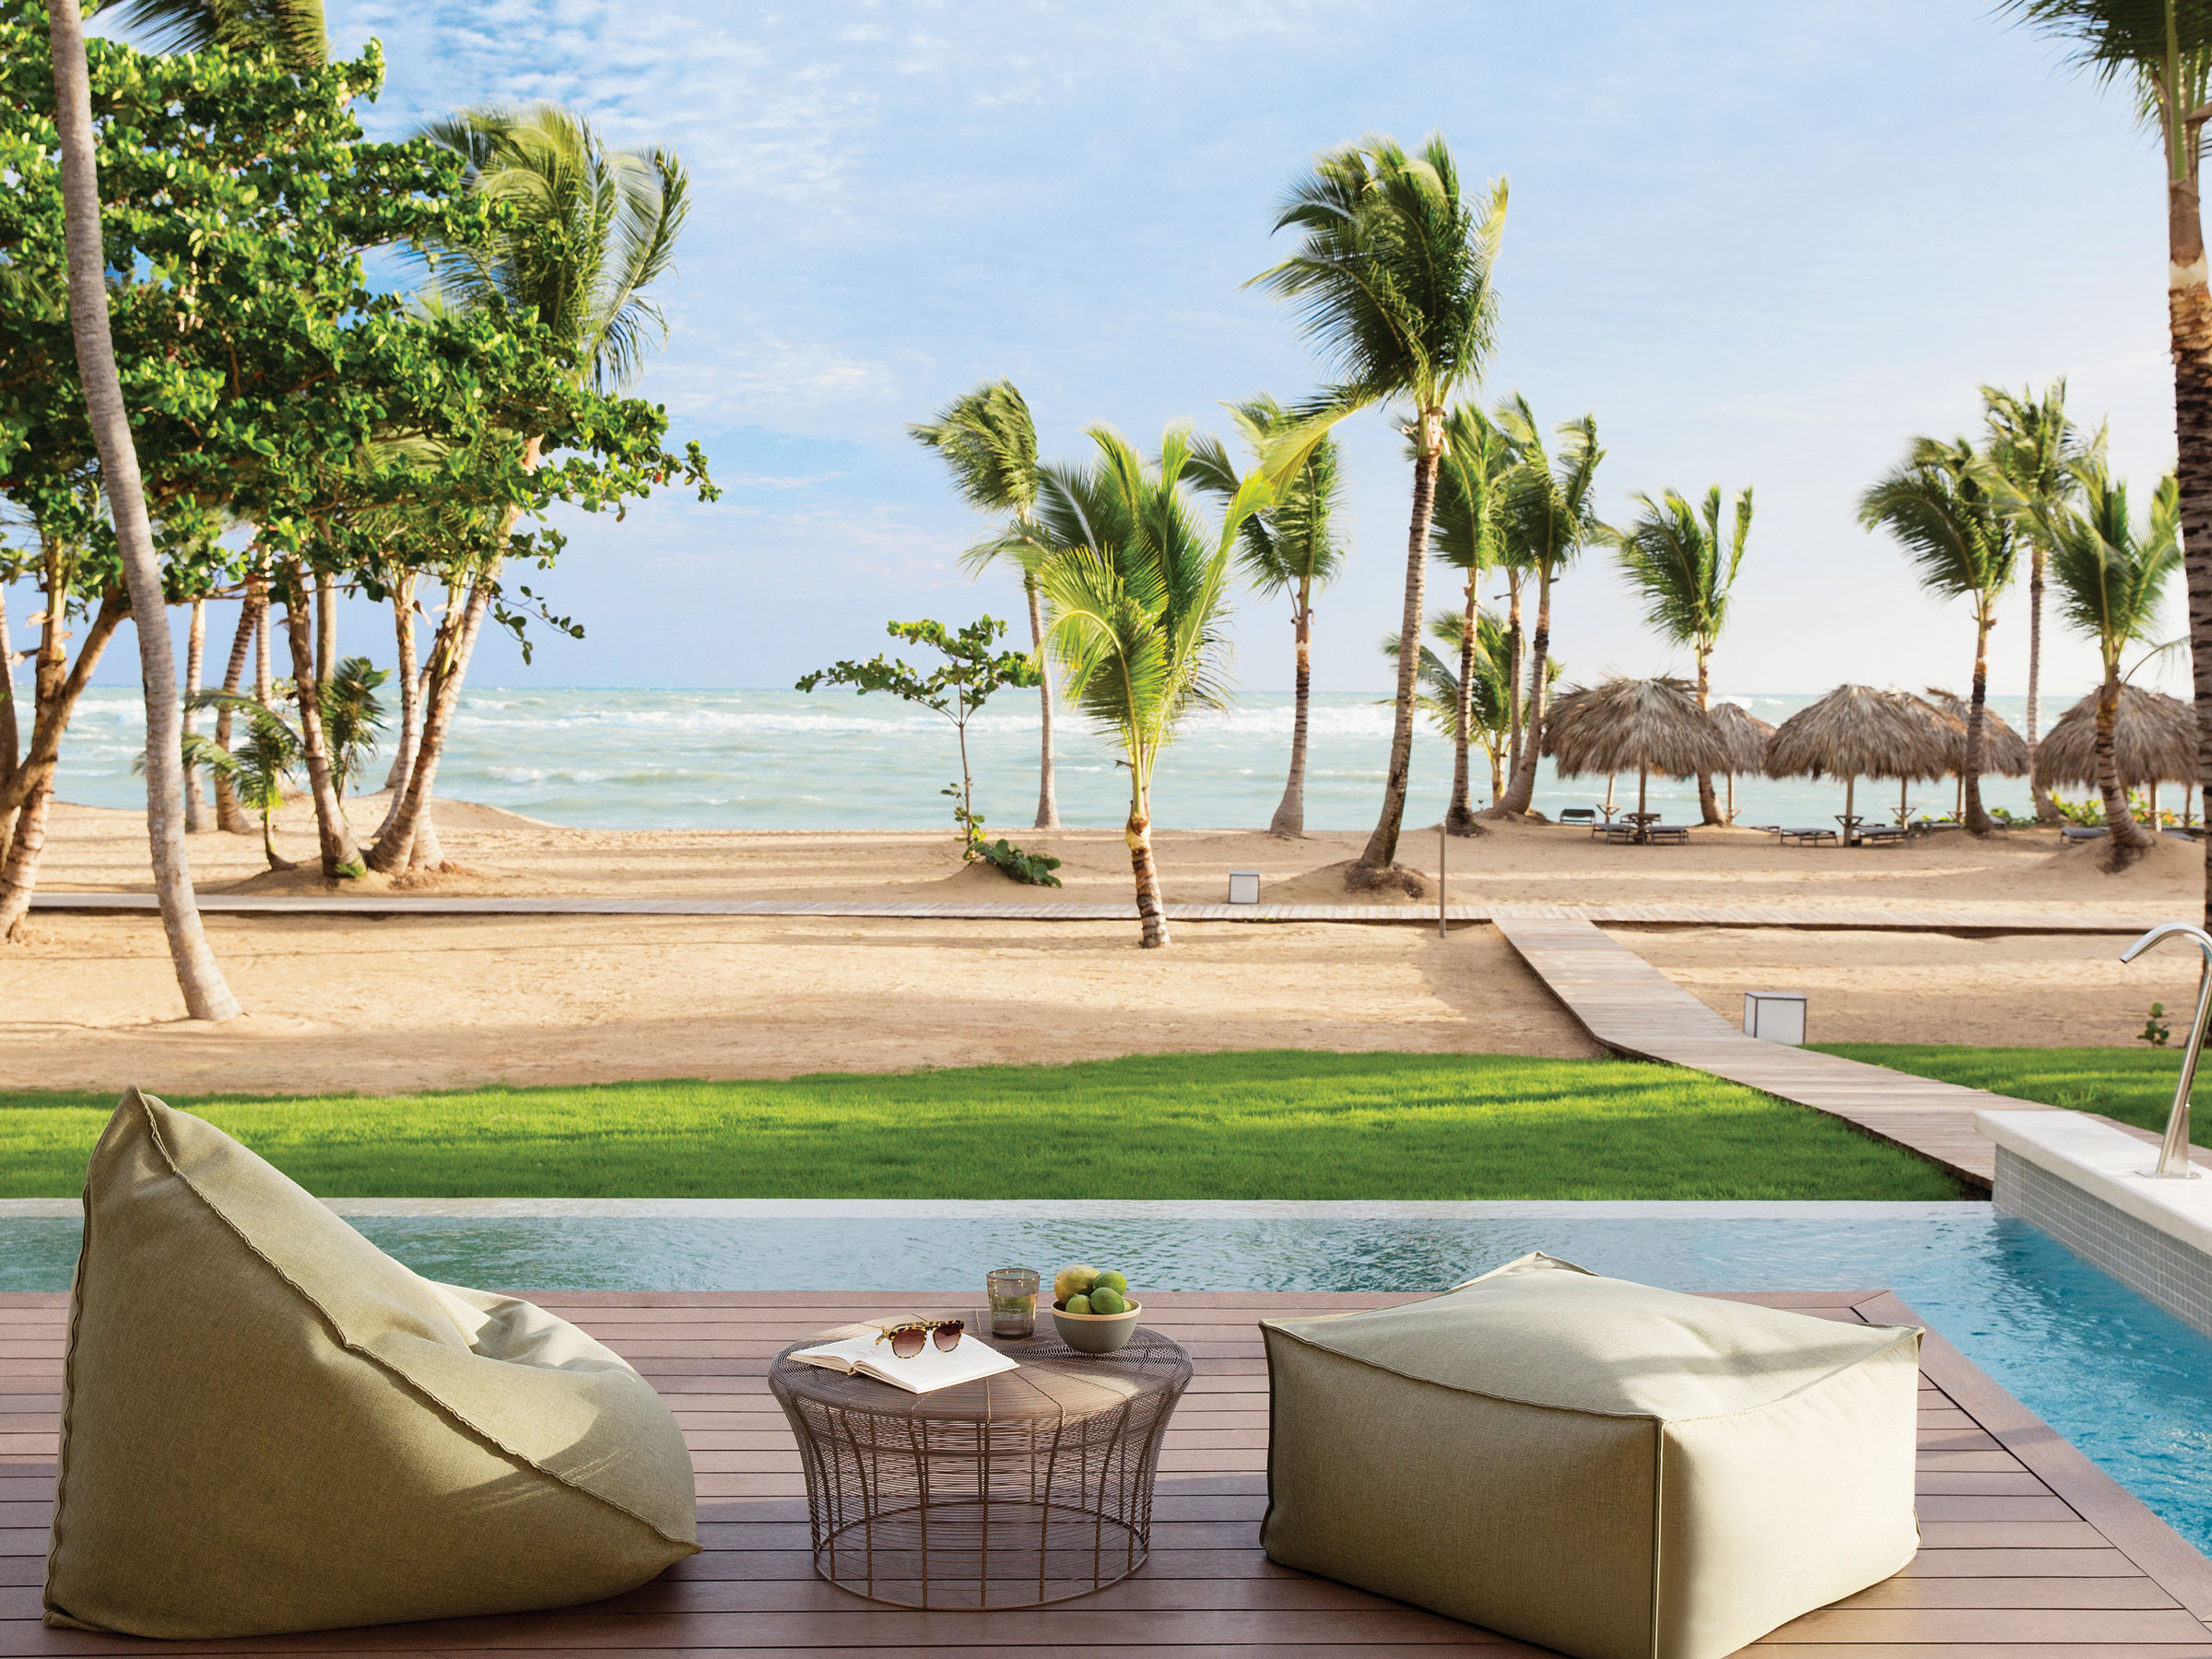 Upscale Getaways at One of Our Luxury Caribbean Resorts in Punta Cana